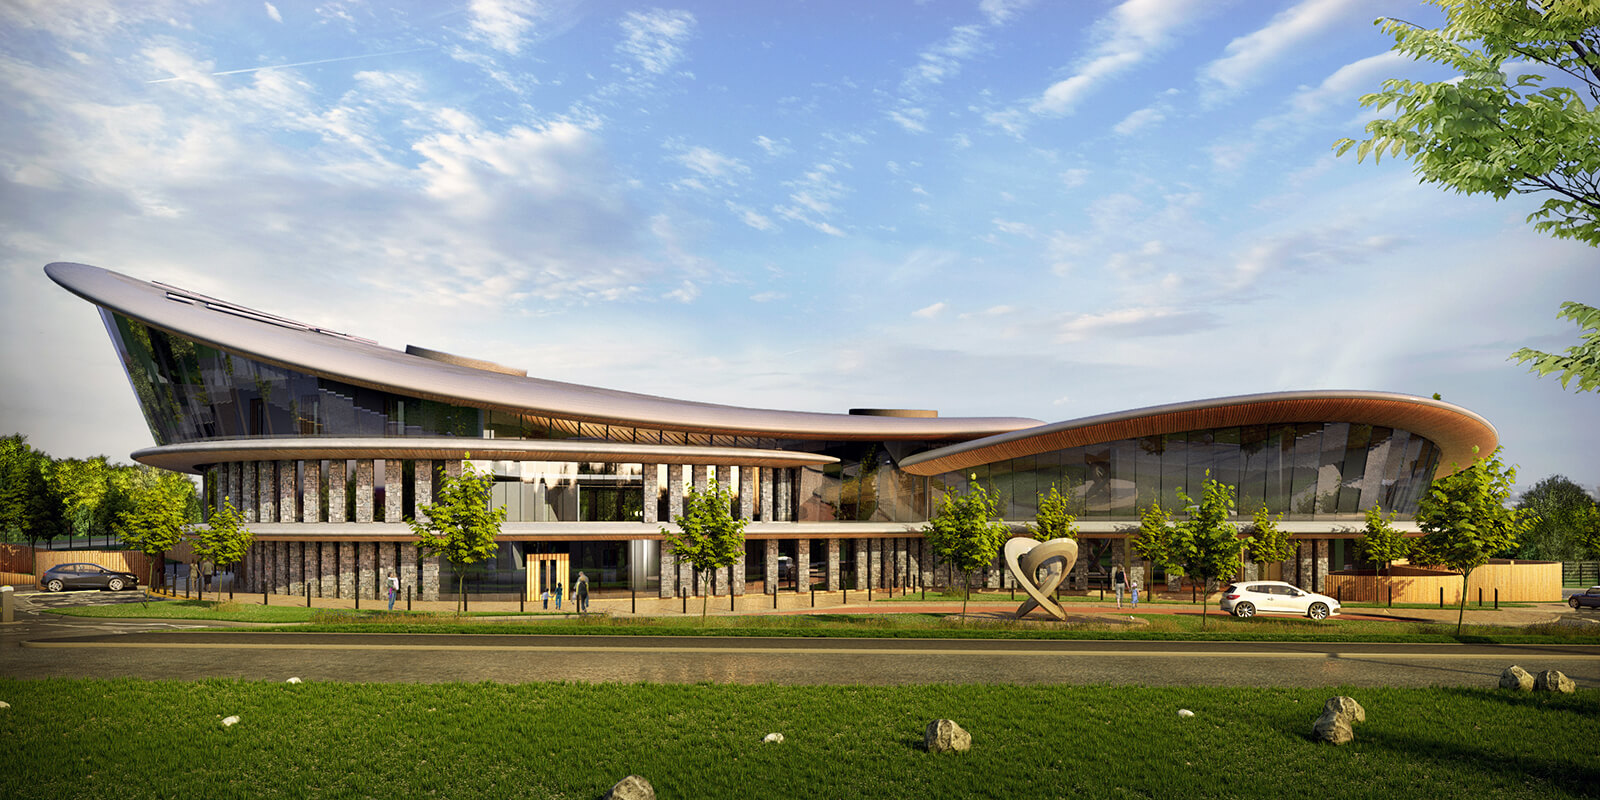 The Caudwell International Children's Centre (CICC)